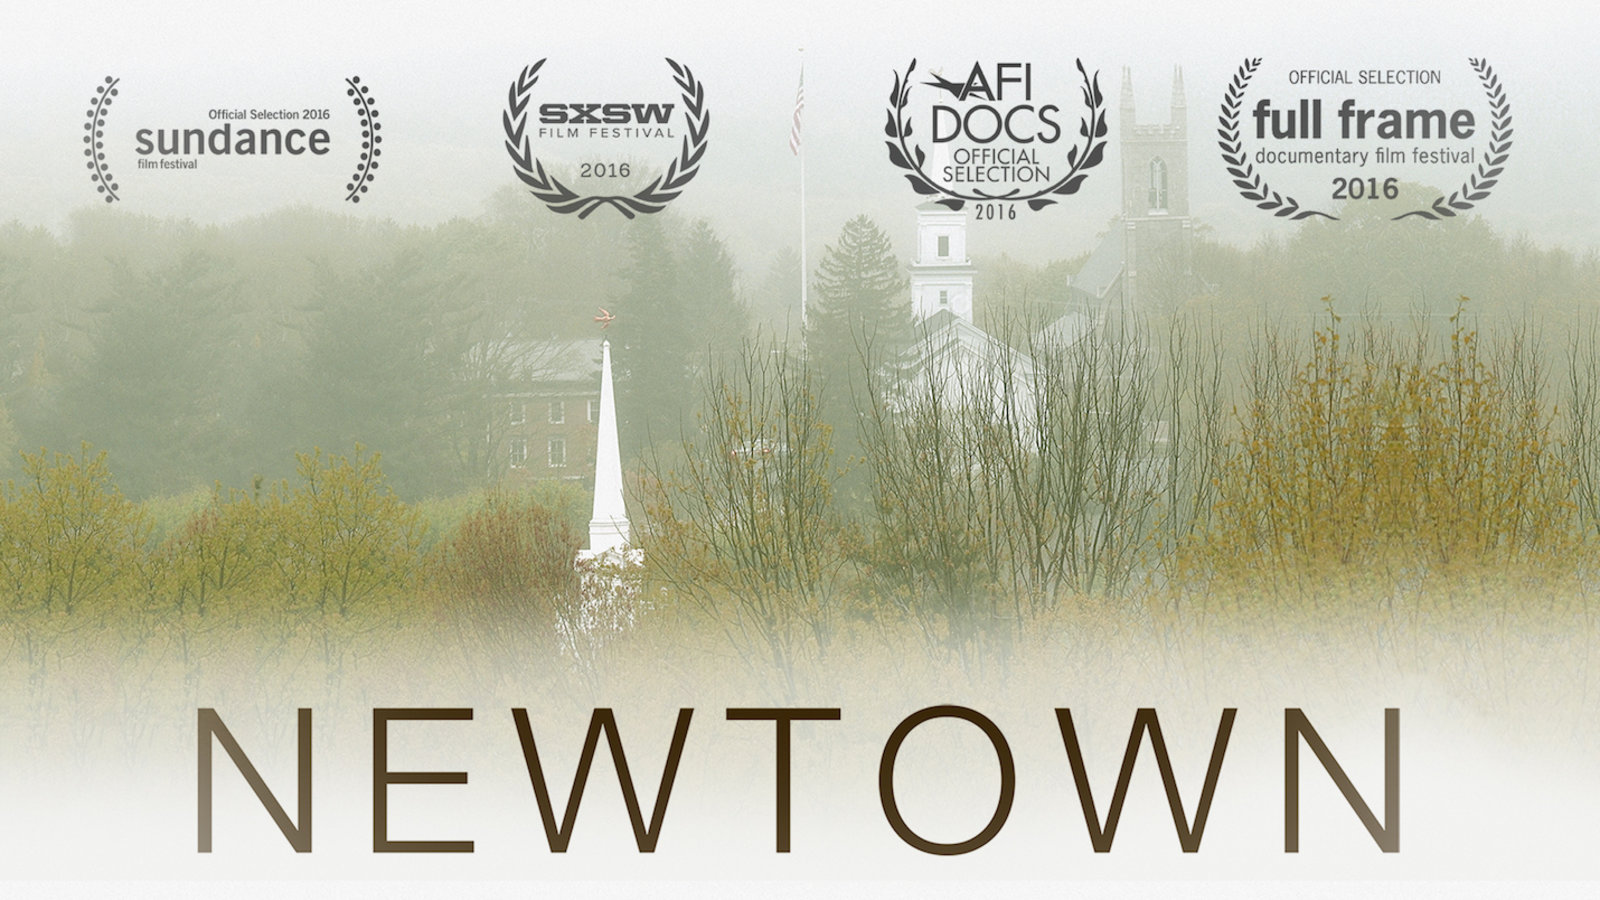 Newtown - A Community Seeks Answers After an Unspeakable Tragedy